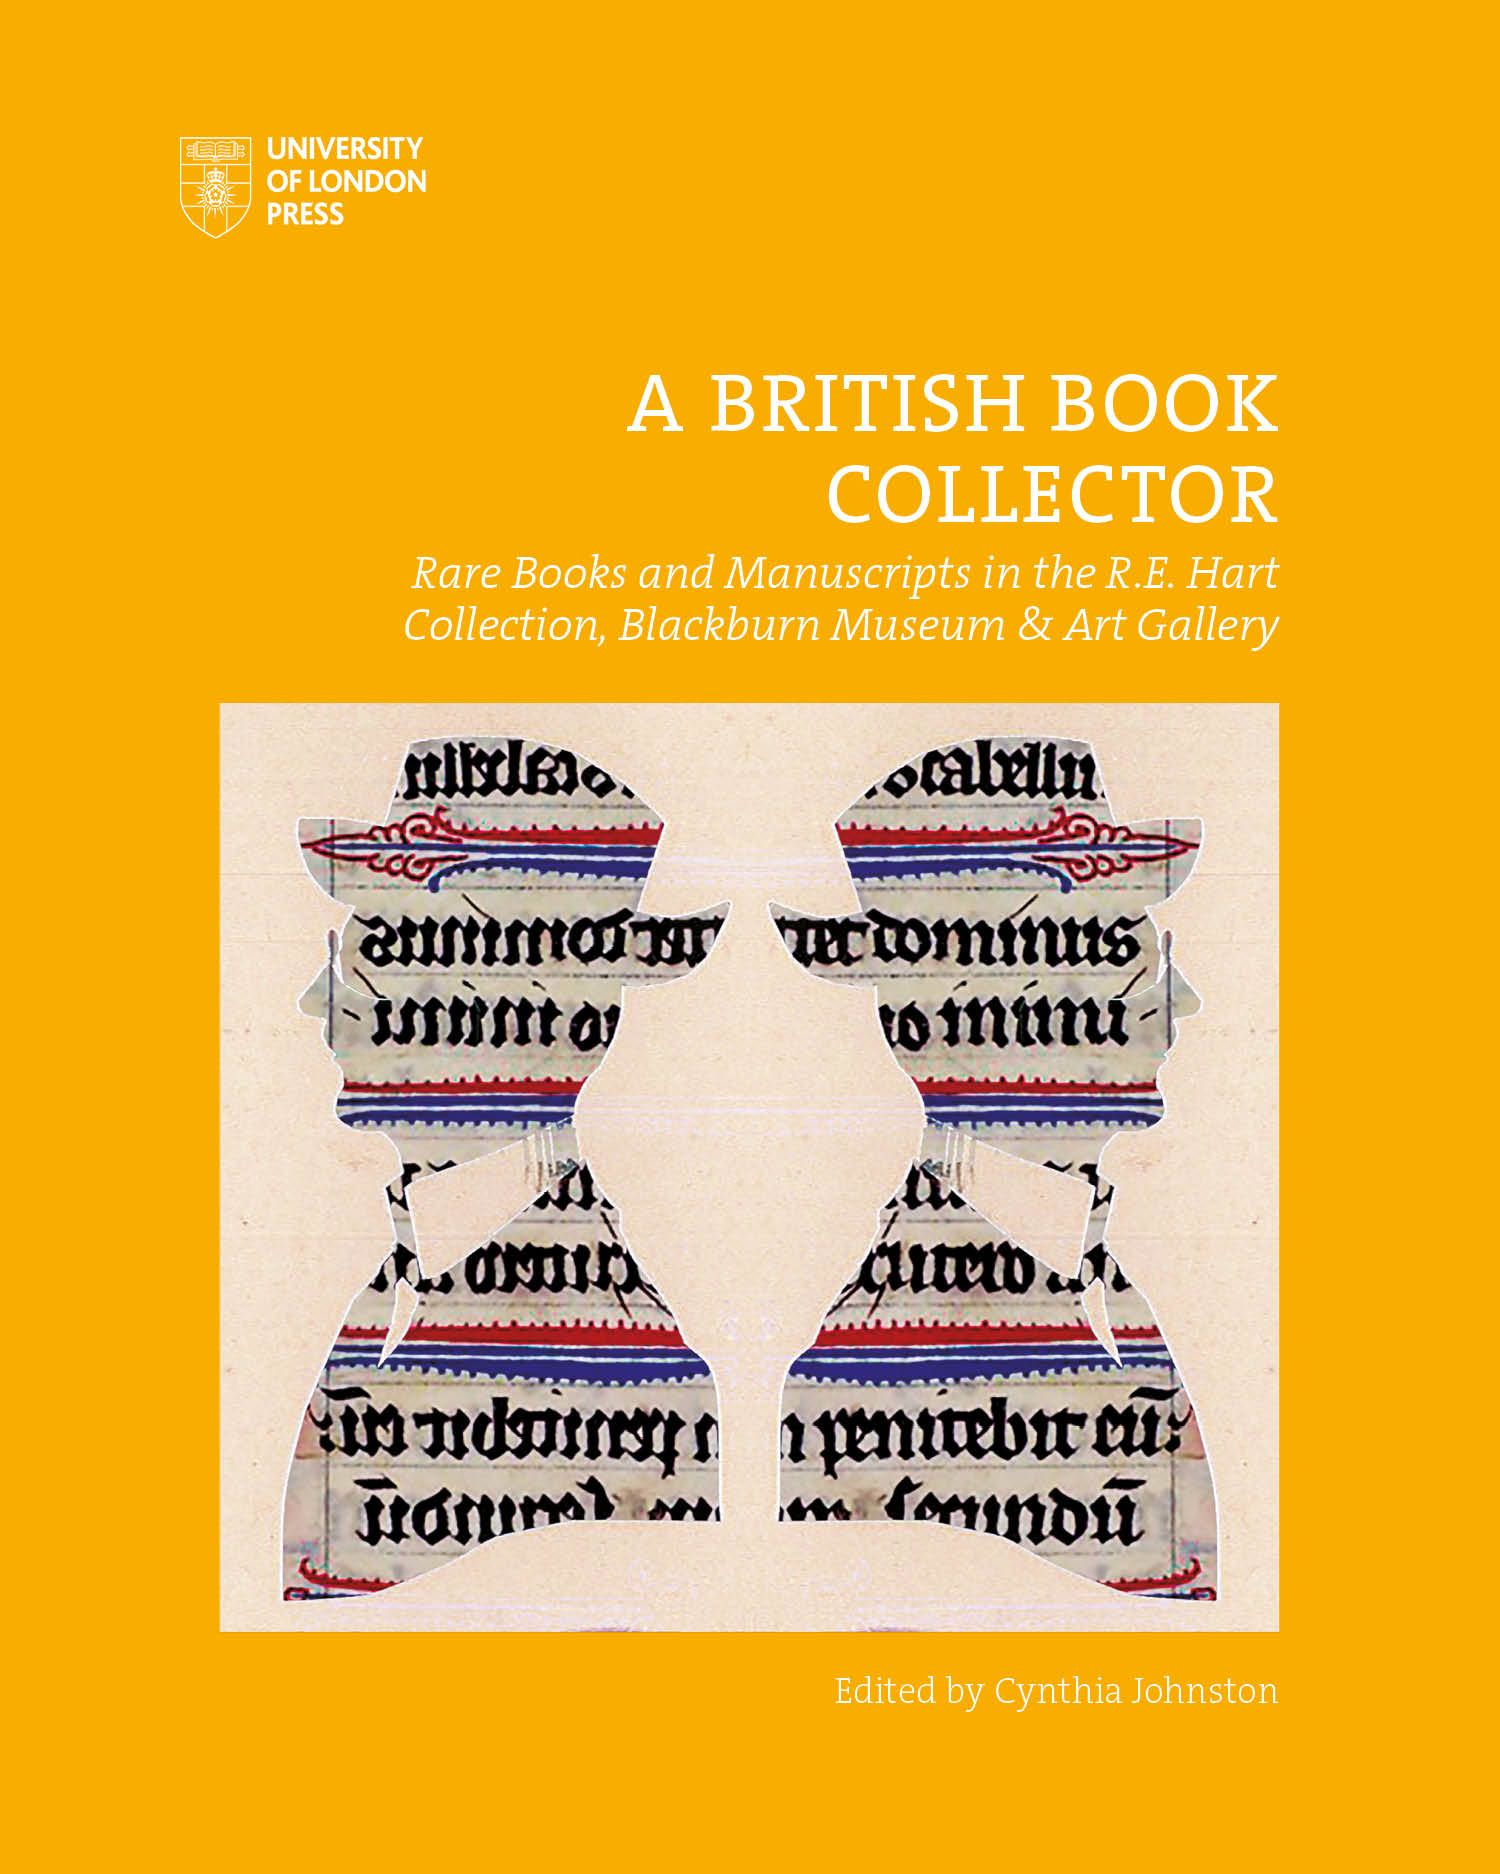 A British Book Collector: Rare Books and Manuscripts in the R.E. Hart Collection, Blackburn Museum and Art Gallery